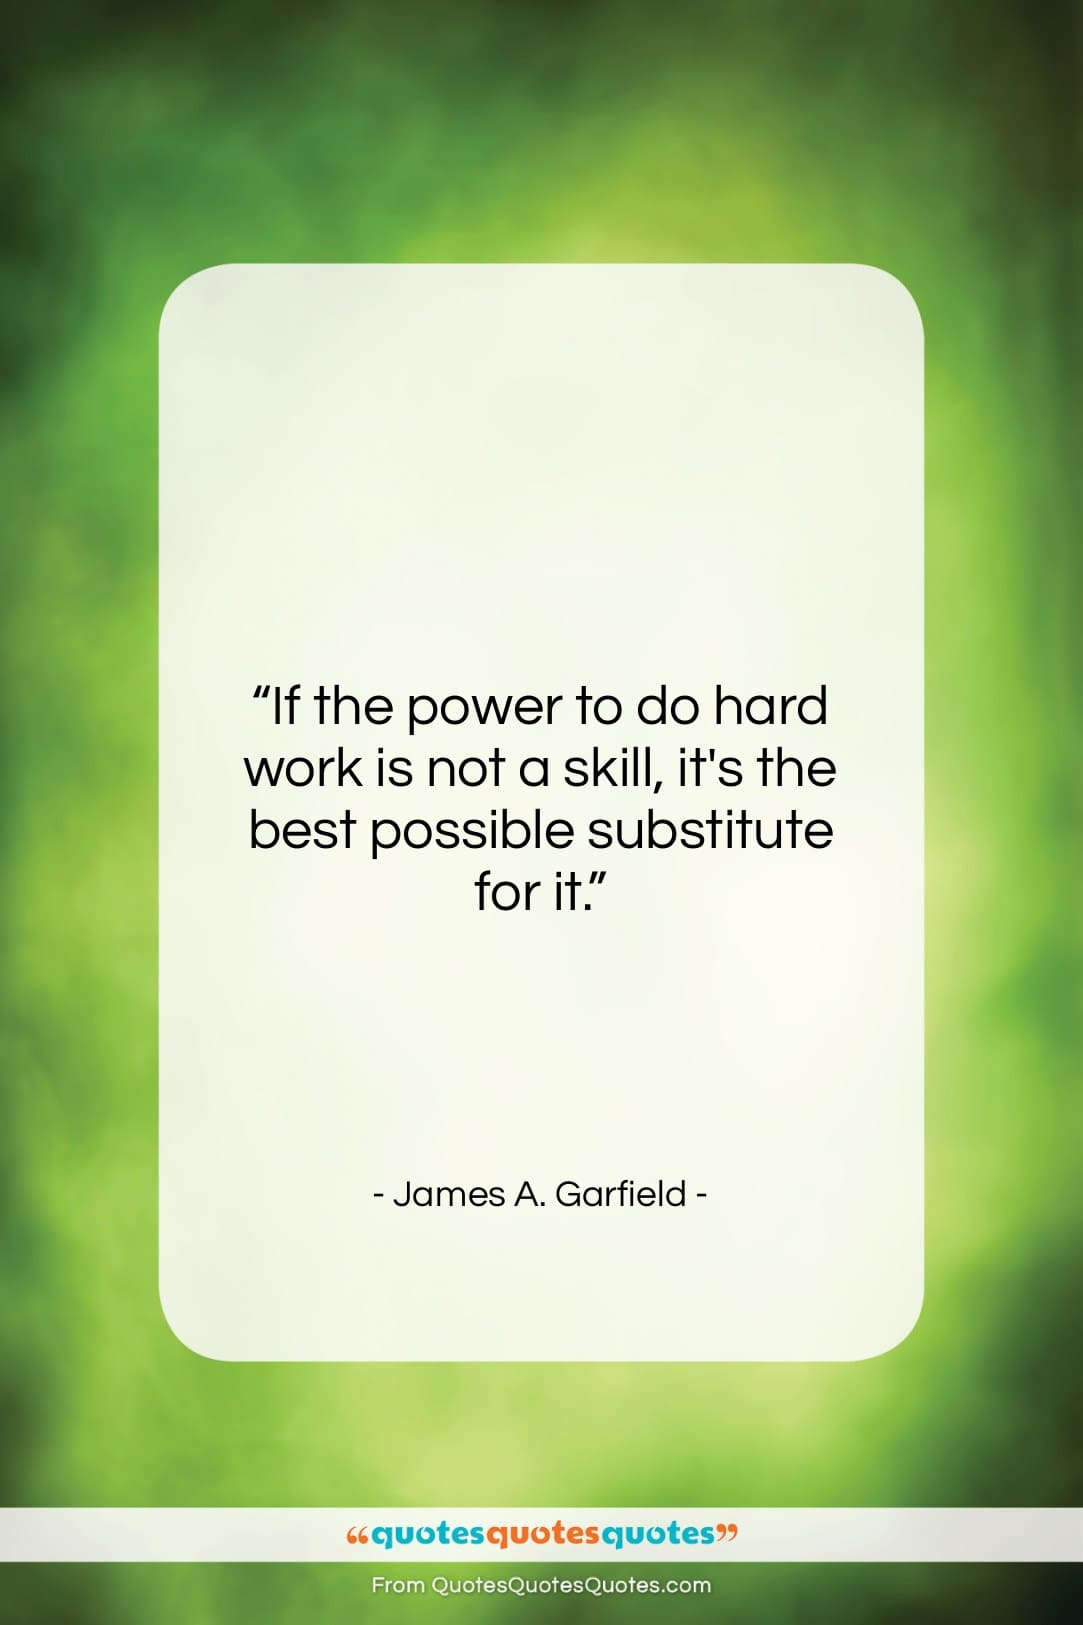 """James A. Garfield quote: """"If the power to do hard work…""""- at QuotesQuotesQuotes.com"""